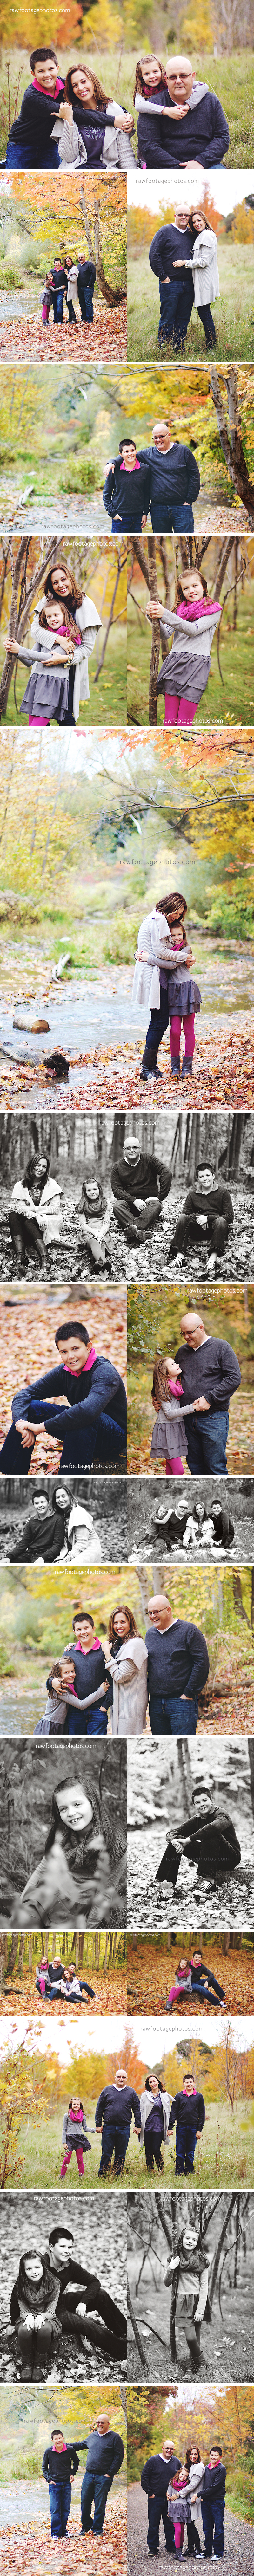 London Ontario Outdoor Fall Family Photos